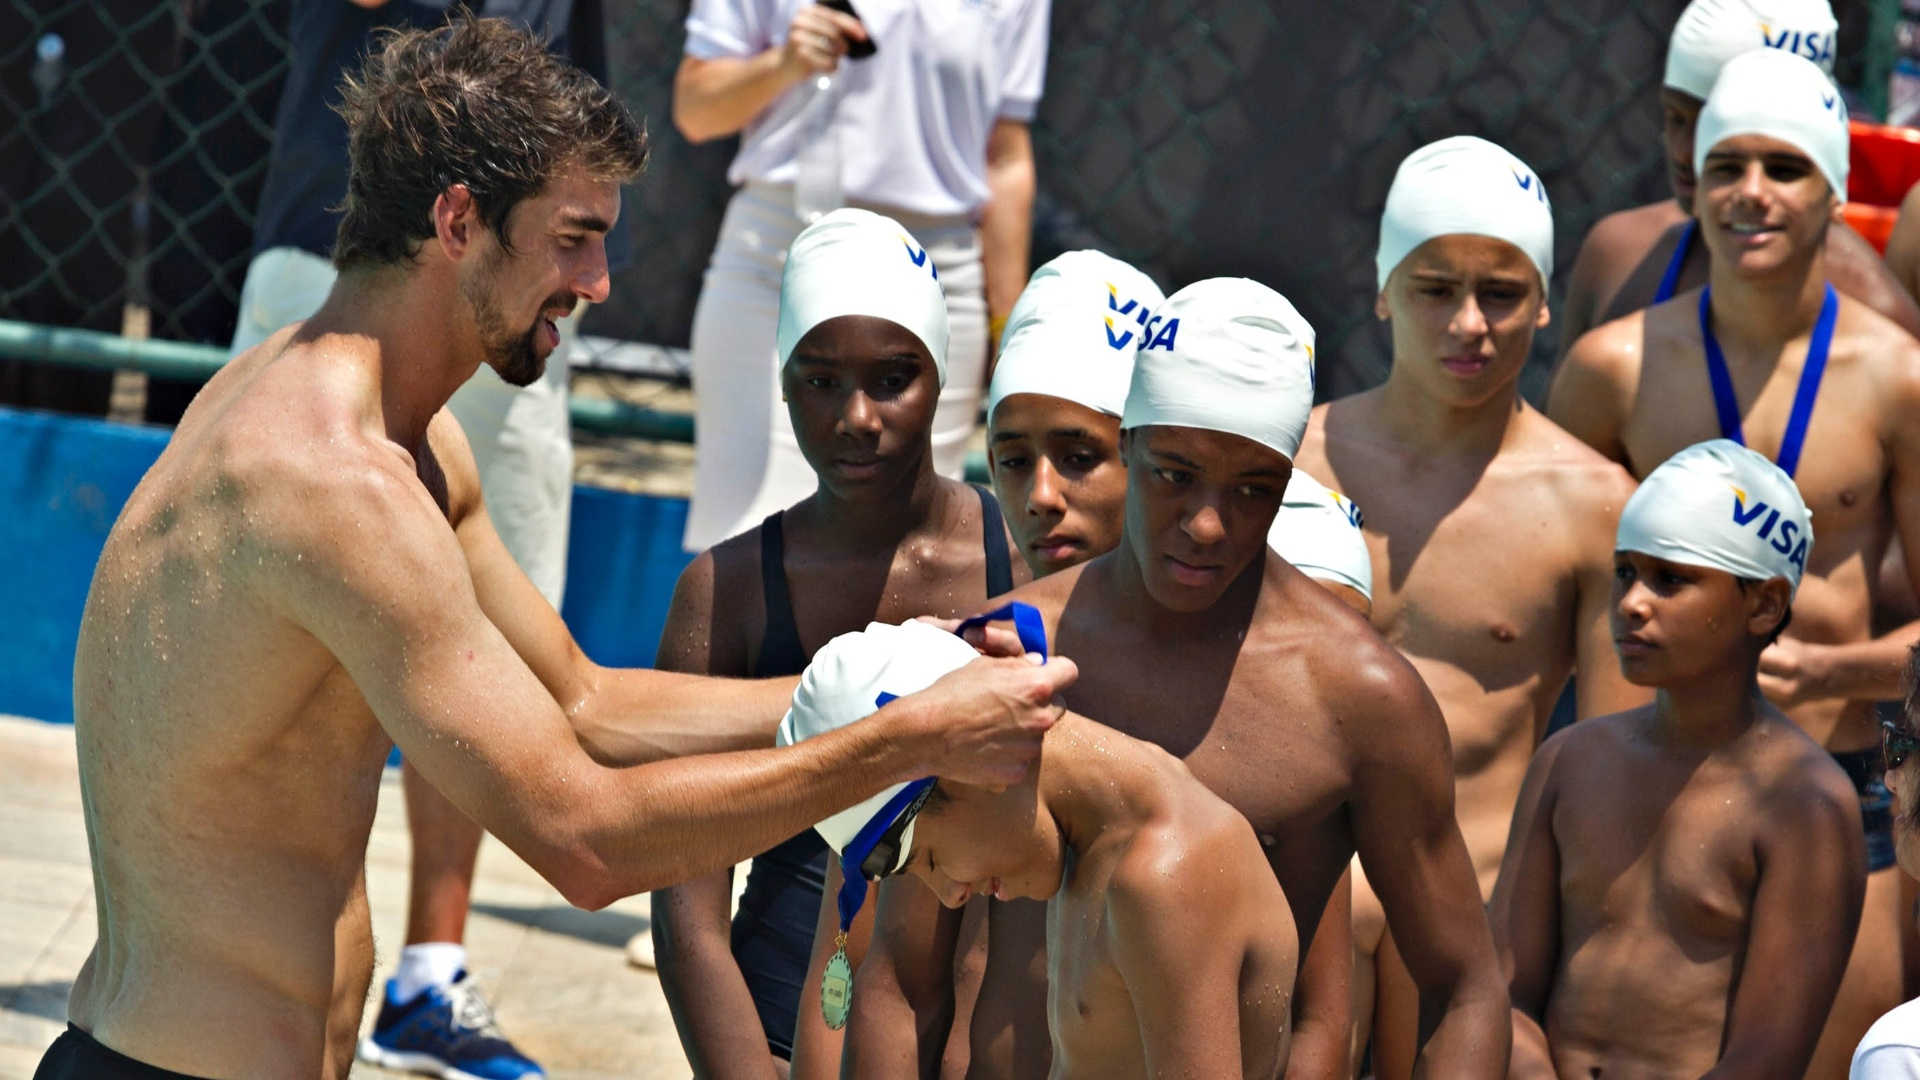 Michael Phelps d medalha para garoto durante visita ao Complexo do Alemo, no Rio de Janeiro (30/10/2012)